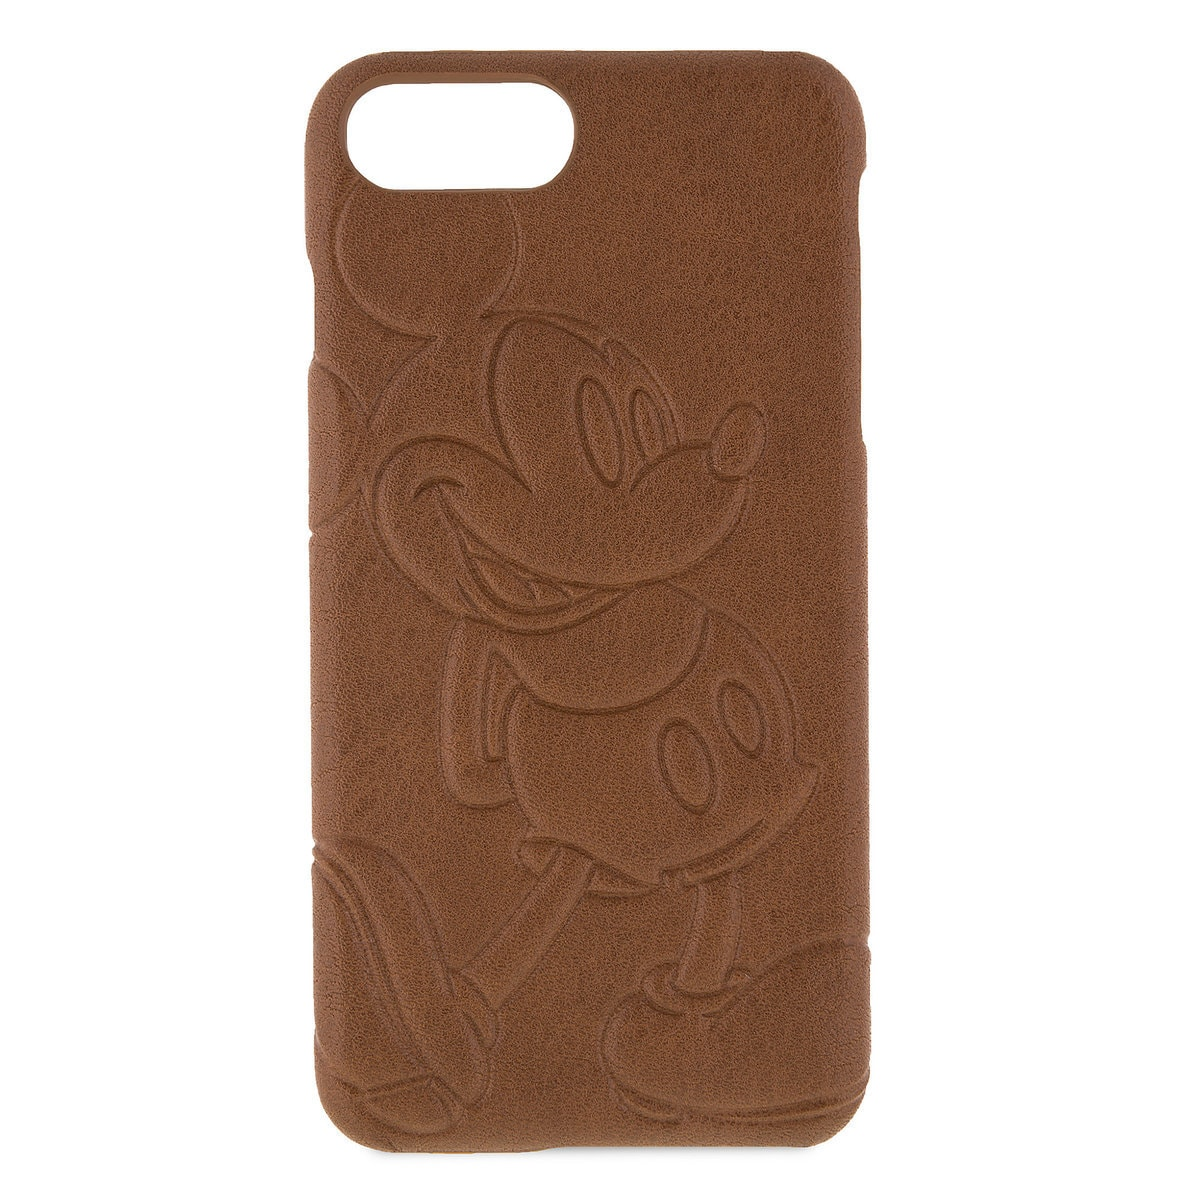 brown leather iphone 7 case